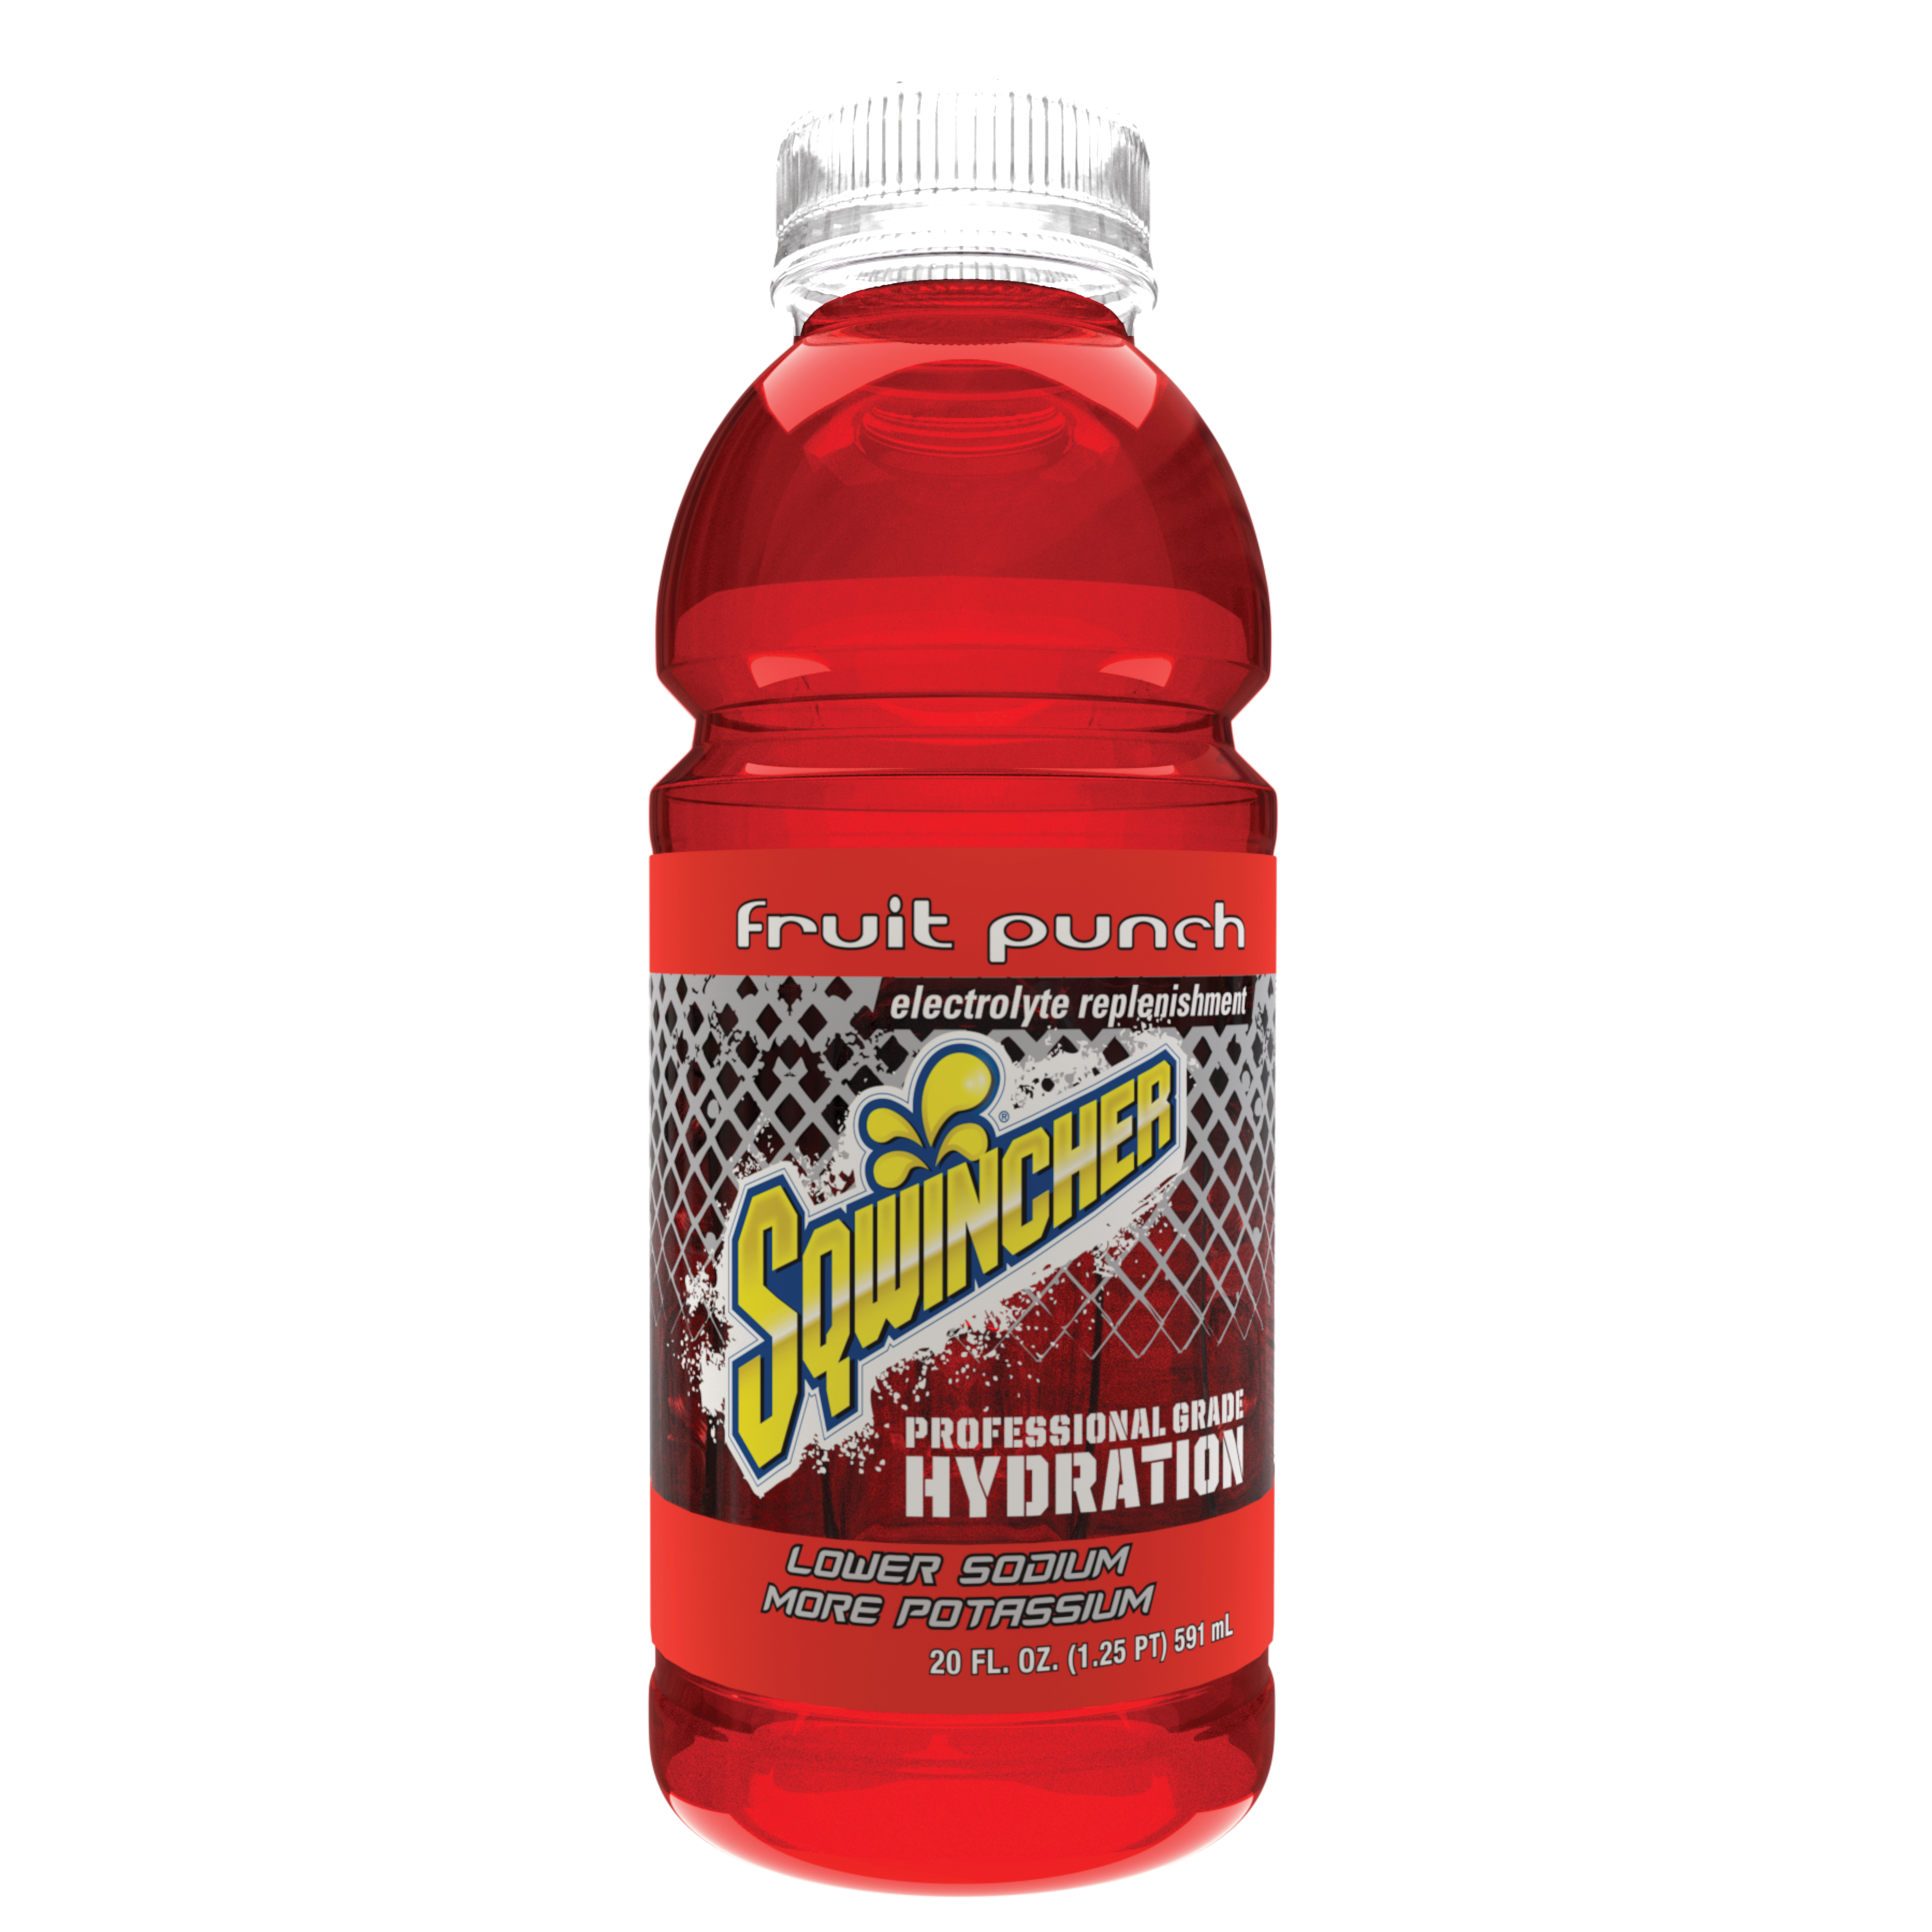 Sqwincher® 030535-FP Sports Drink, 20 oz Wide Mouth Bottle, 20 oz Yield, Ready-to-Drink Form, Fruit Punch